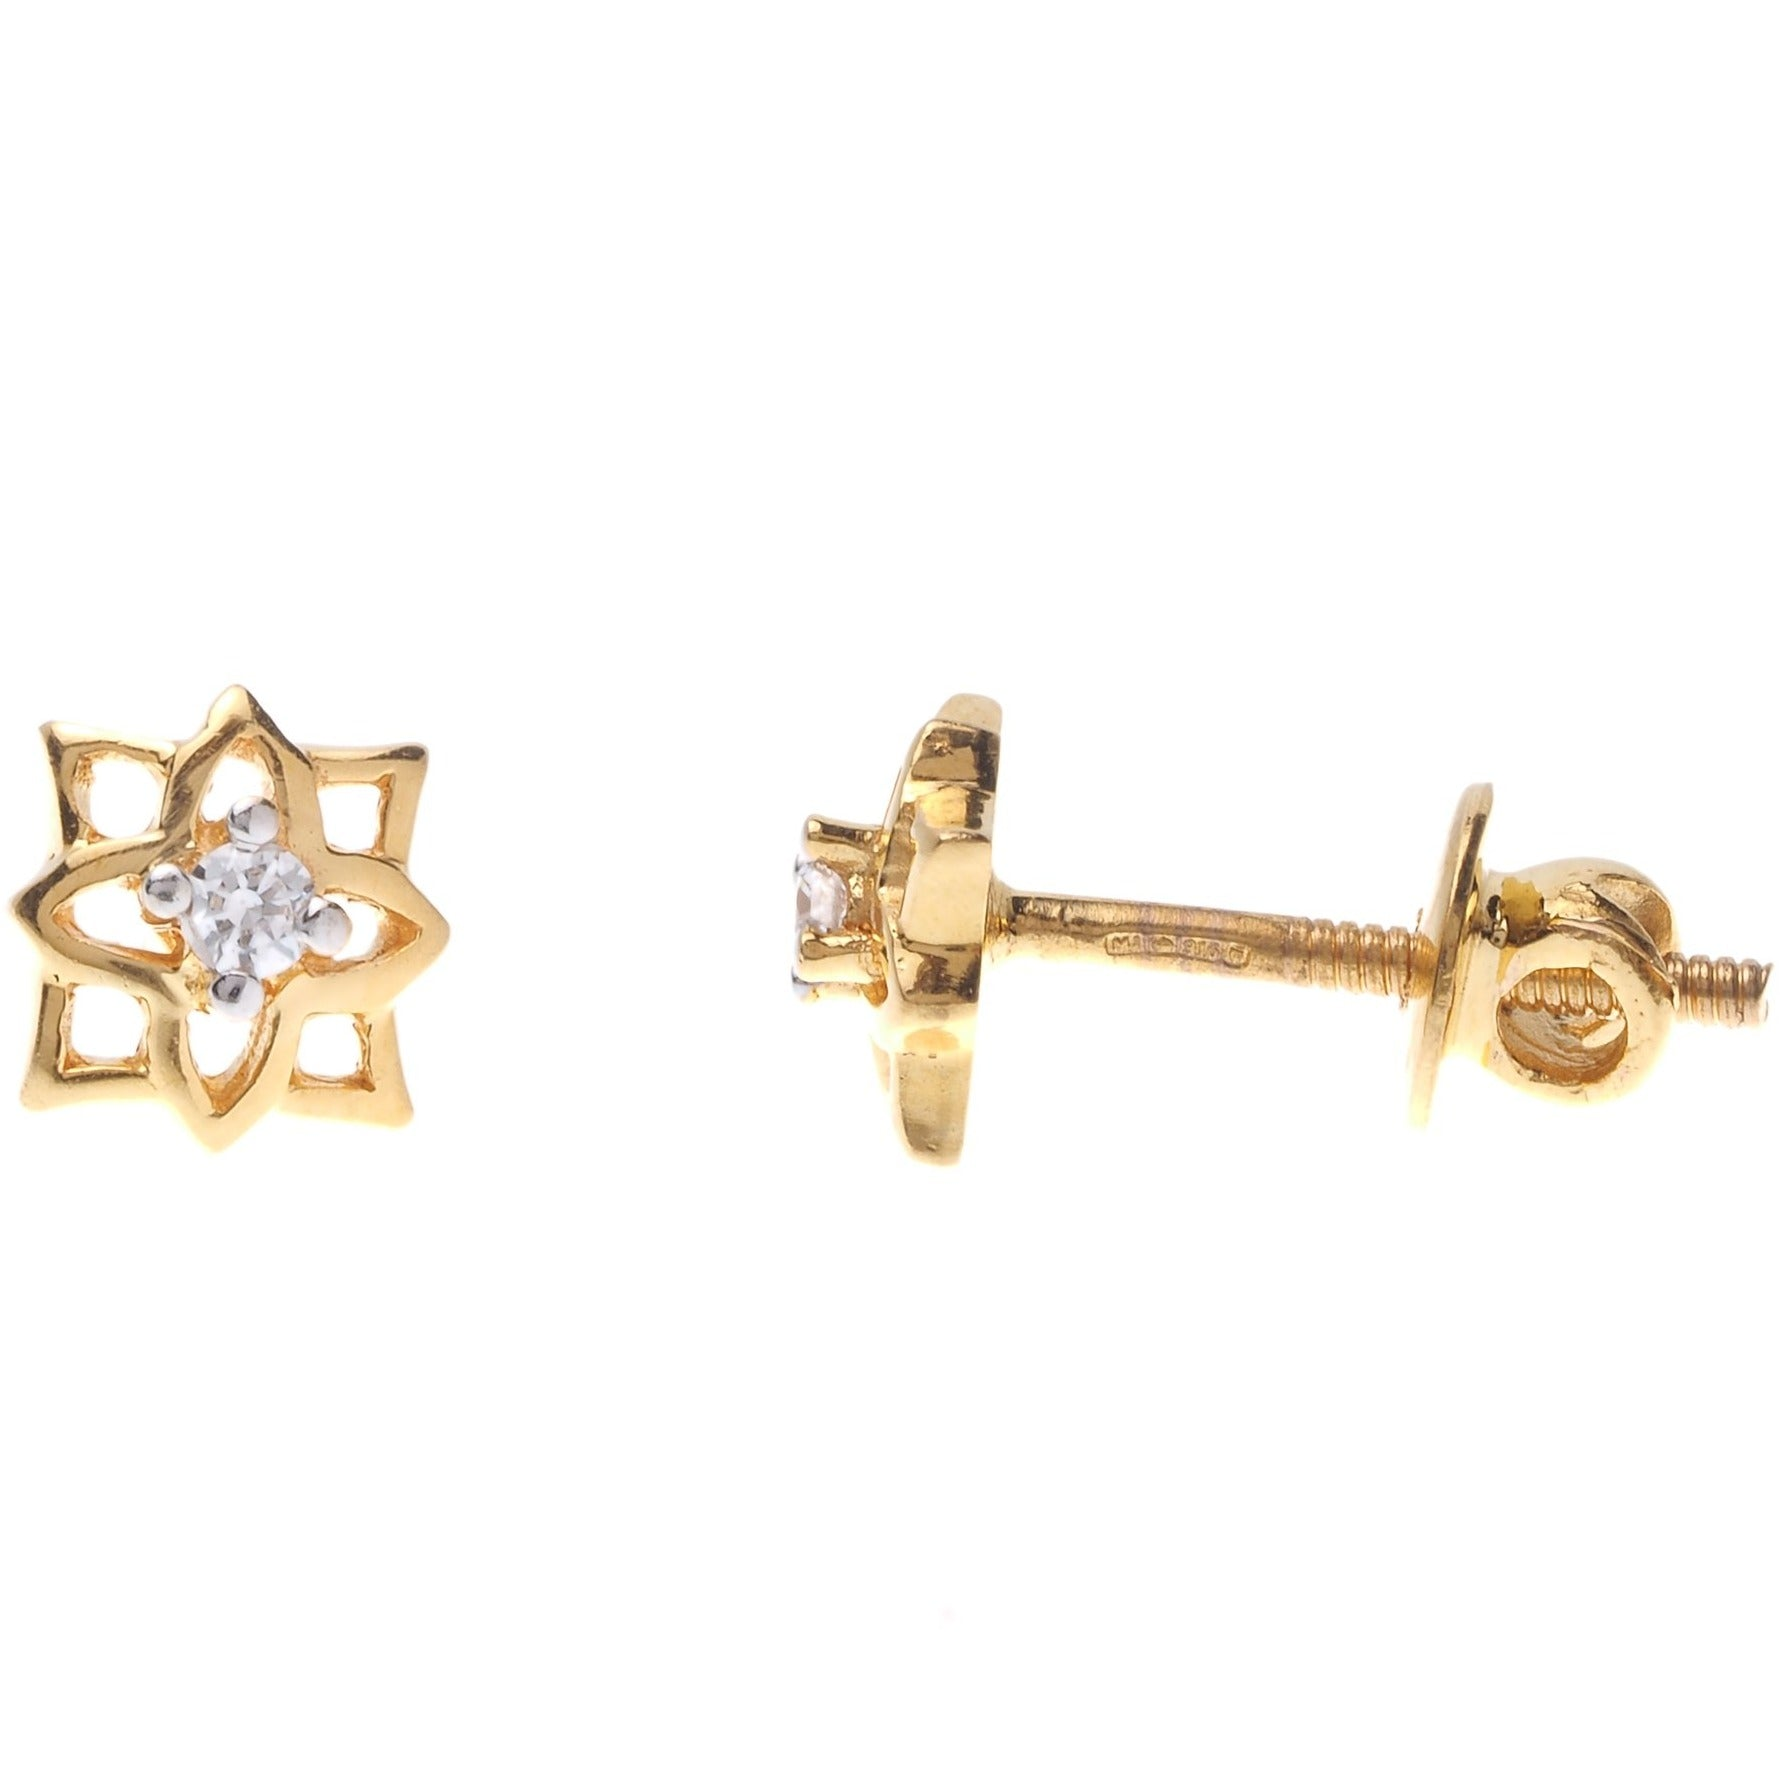 22ct Gold Swarovski Zirconia Stud Earrings (1.89g) ET7002